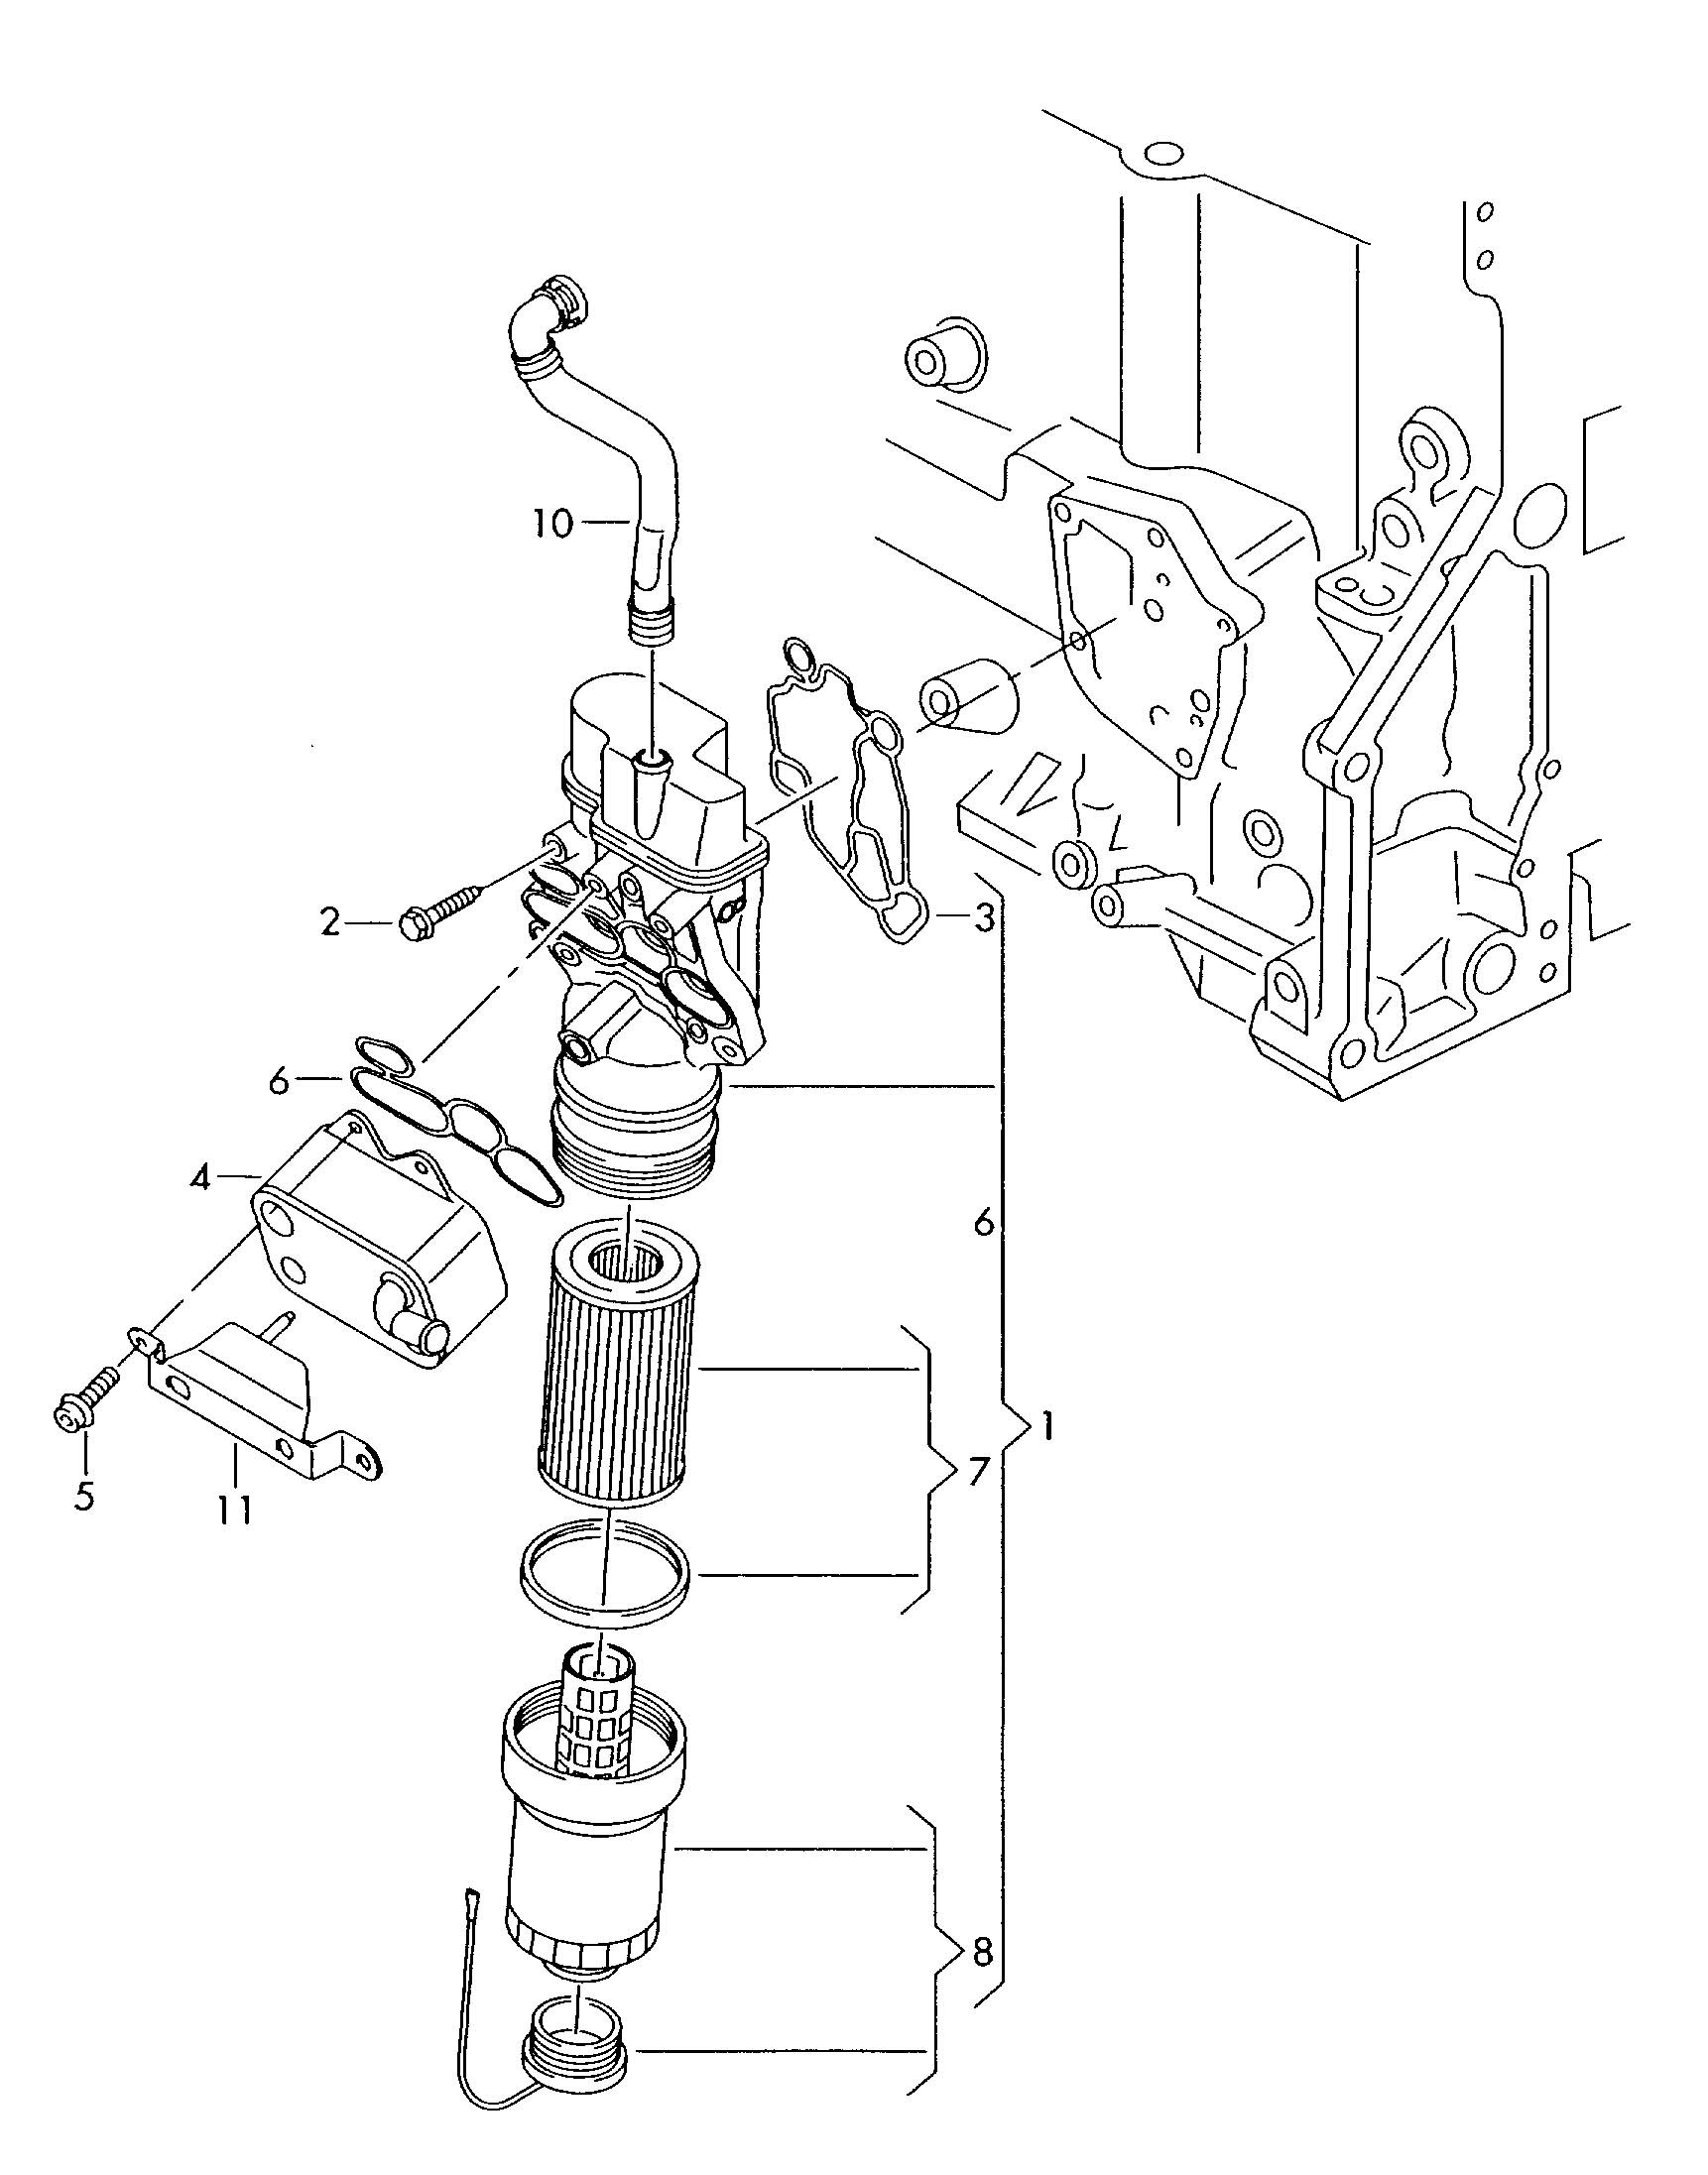 Vw Passat Engine Parts Diagram Vwvortex B6 Oil Leak Behind Part Circuit Maker Line Riviera Auto And Specification 3 Of Related Post